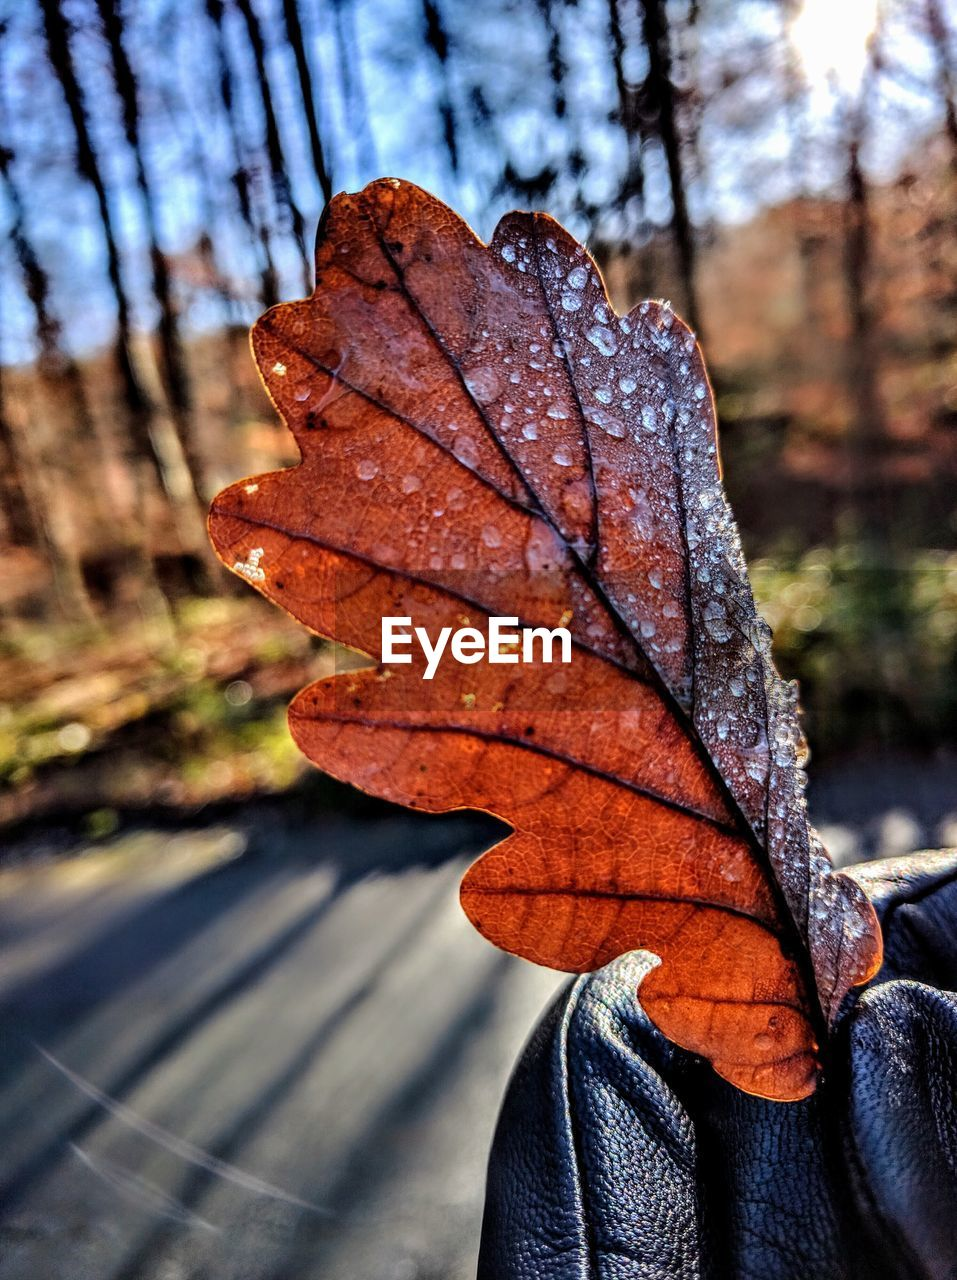 autumn, leaf, change, dry, nature, day, focus on foreground, outdoors, close-up, maple leaf, beauty in nature, maple, no people, water, tree